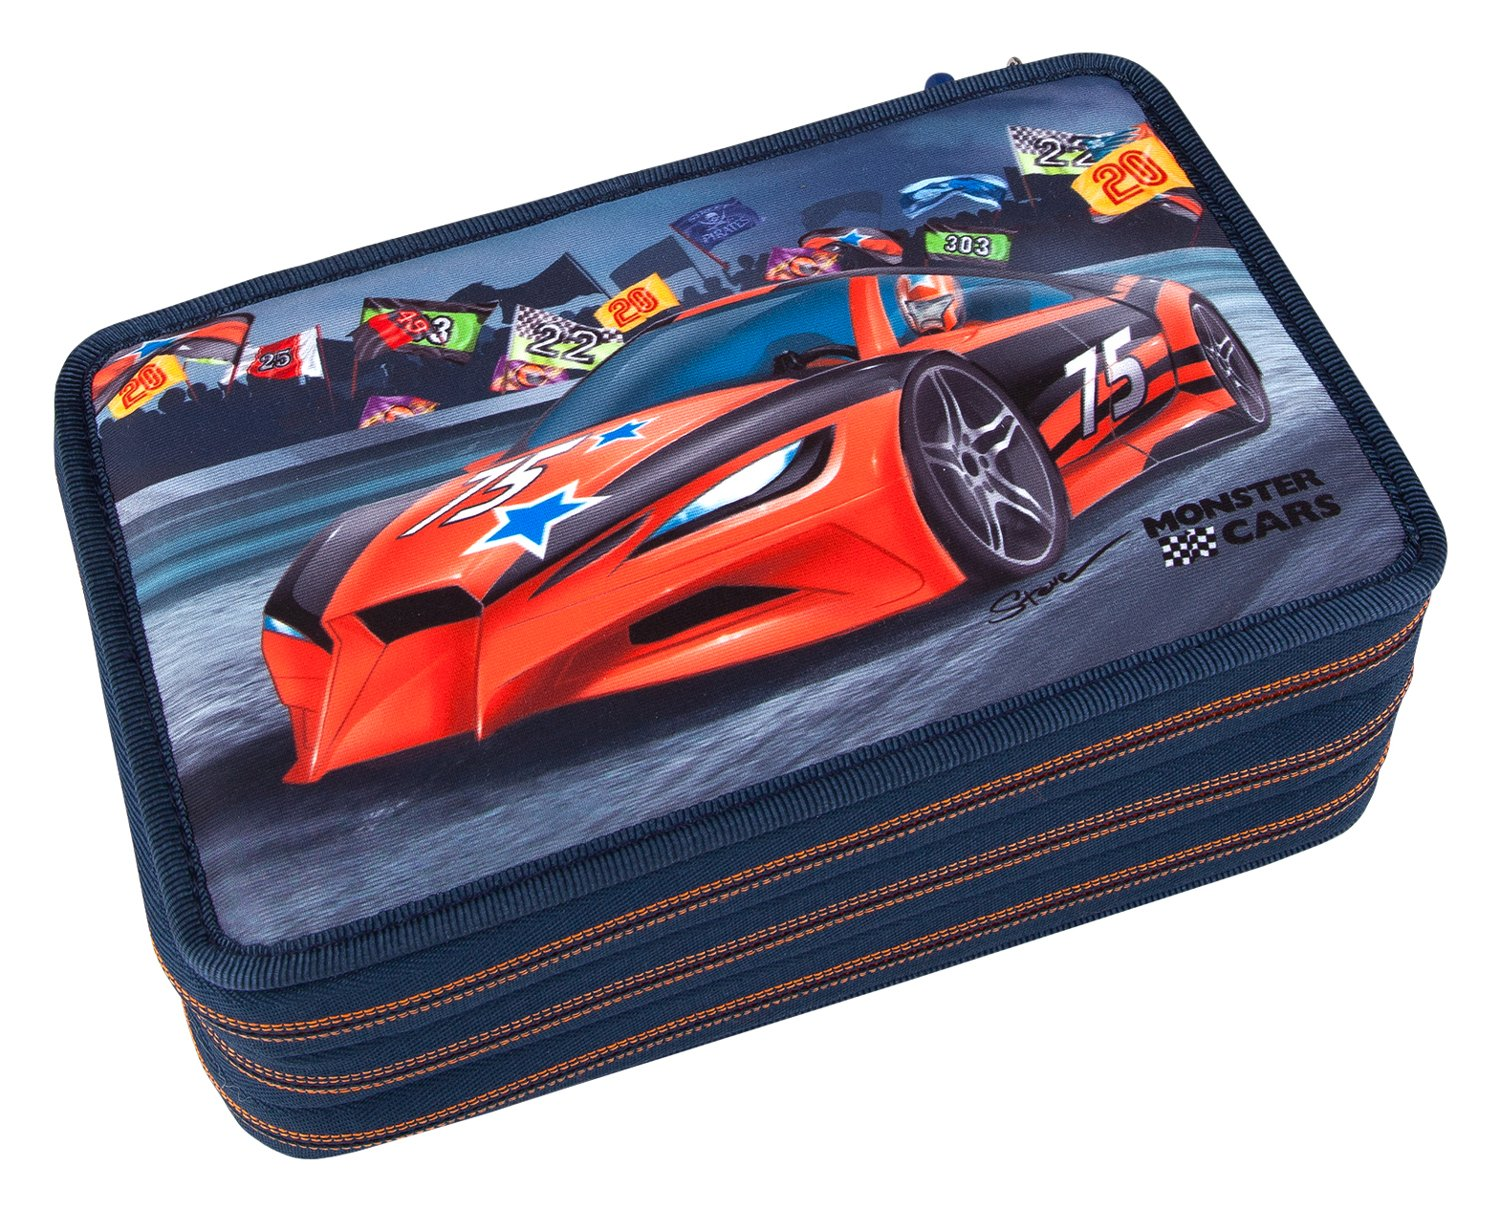 Monster Cars 8218 – Estuche Escolar con 3 Compartimentos, Multicolor